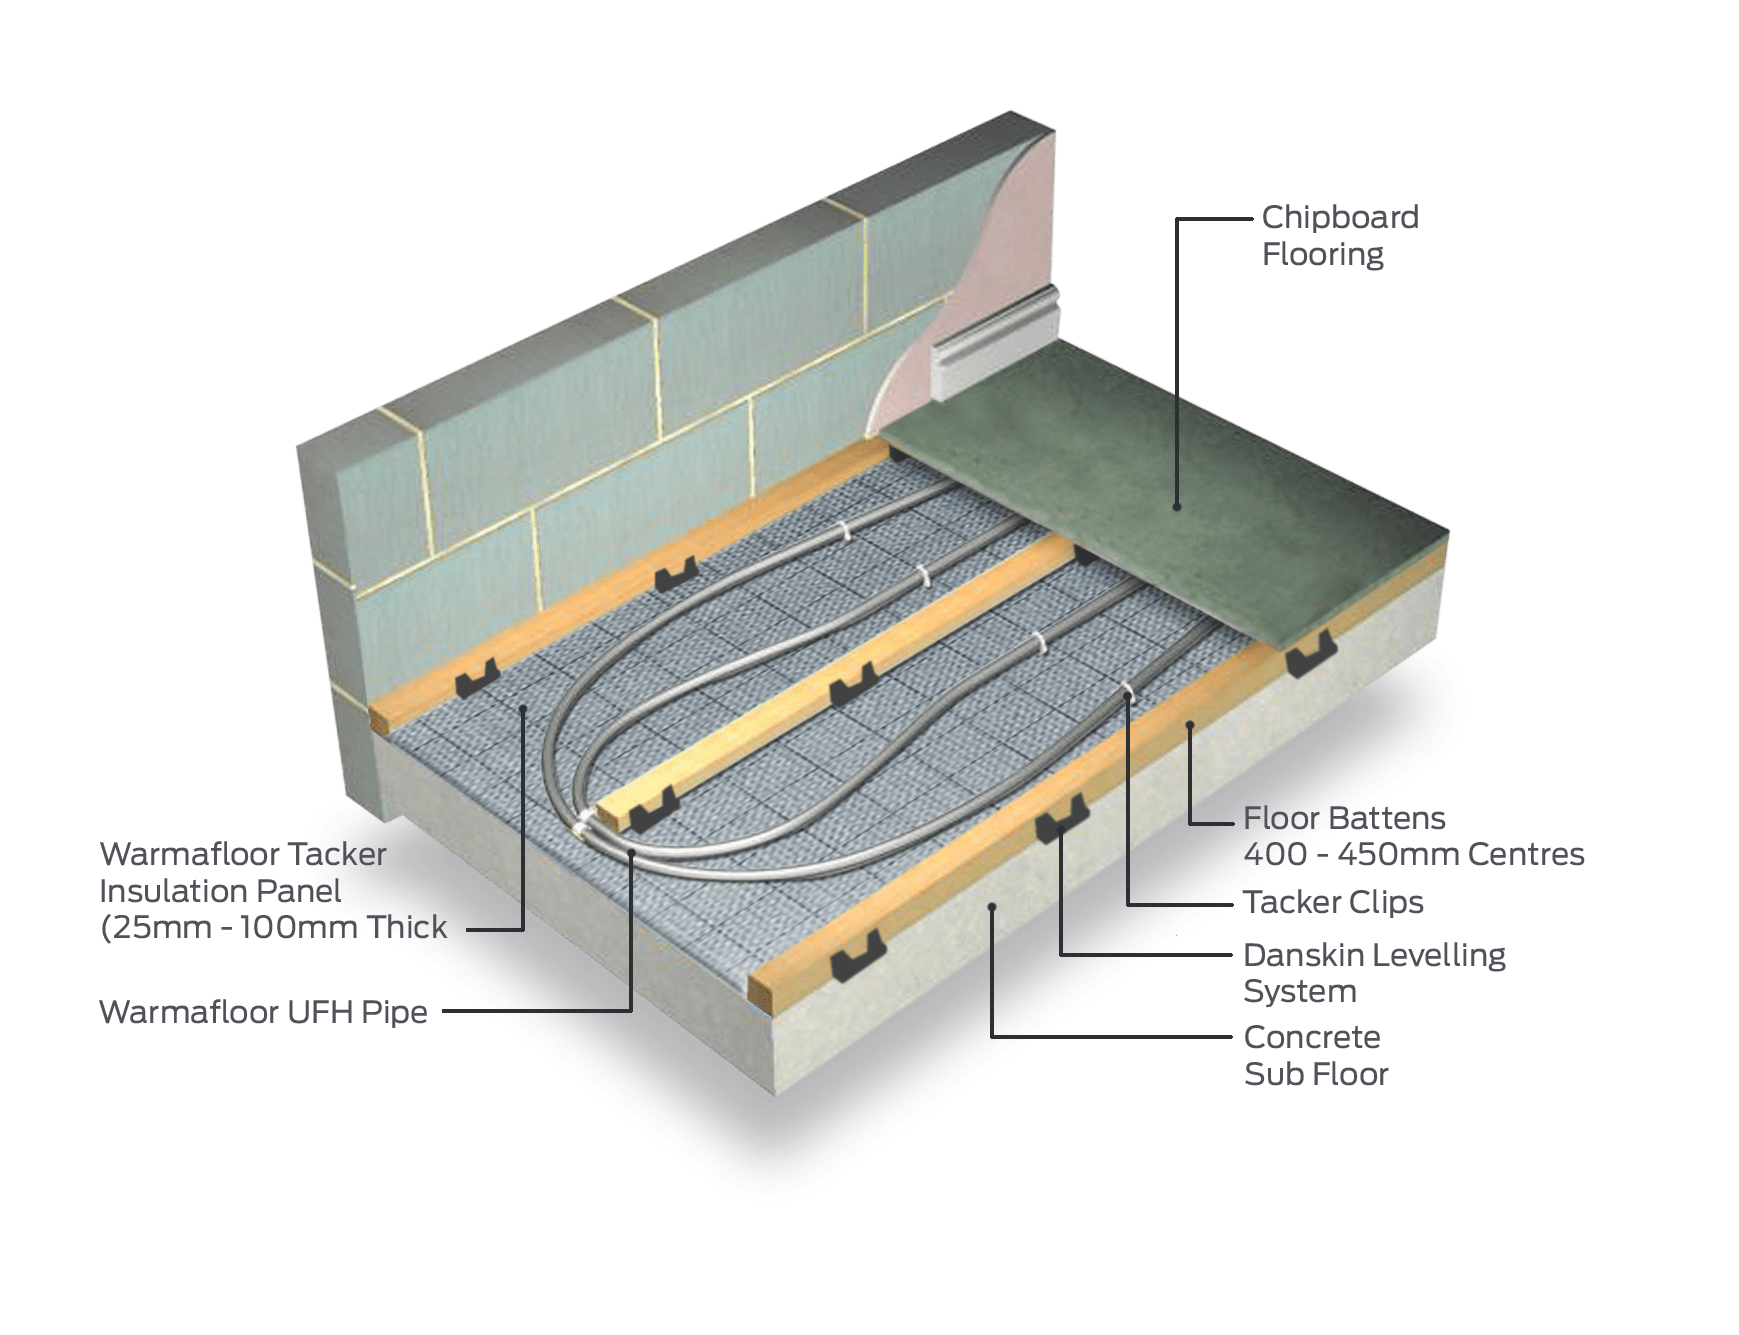 Underfloor Heating Systems For Acoustic Floors To Part E Regs